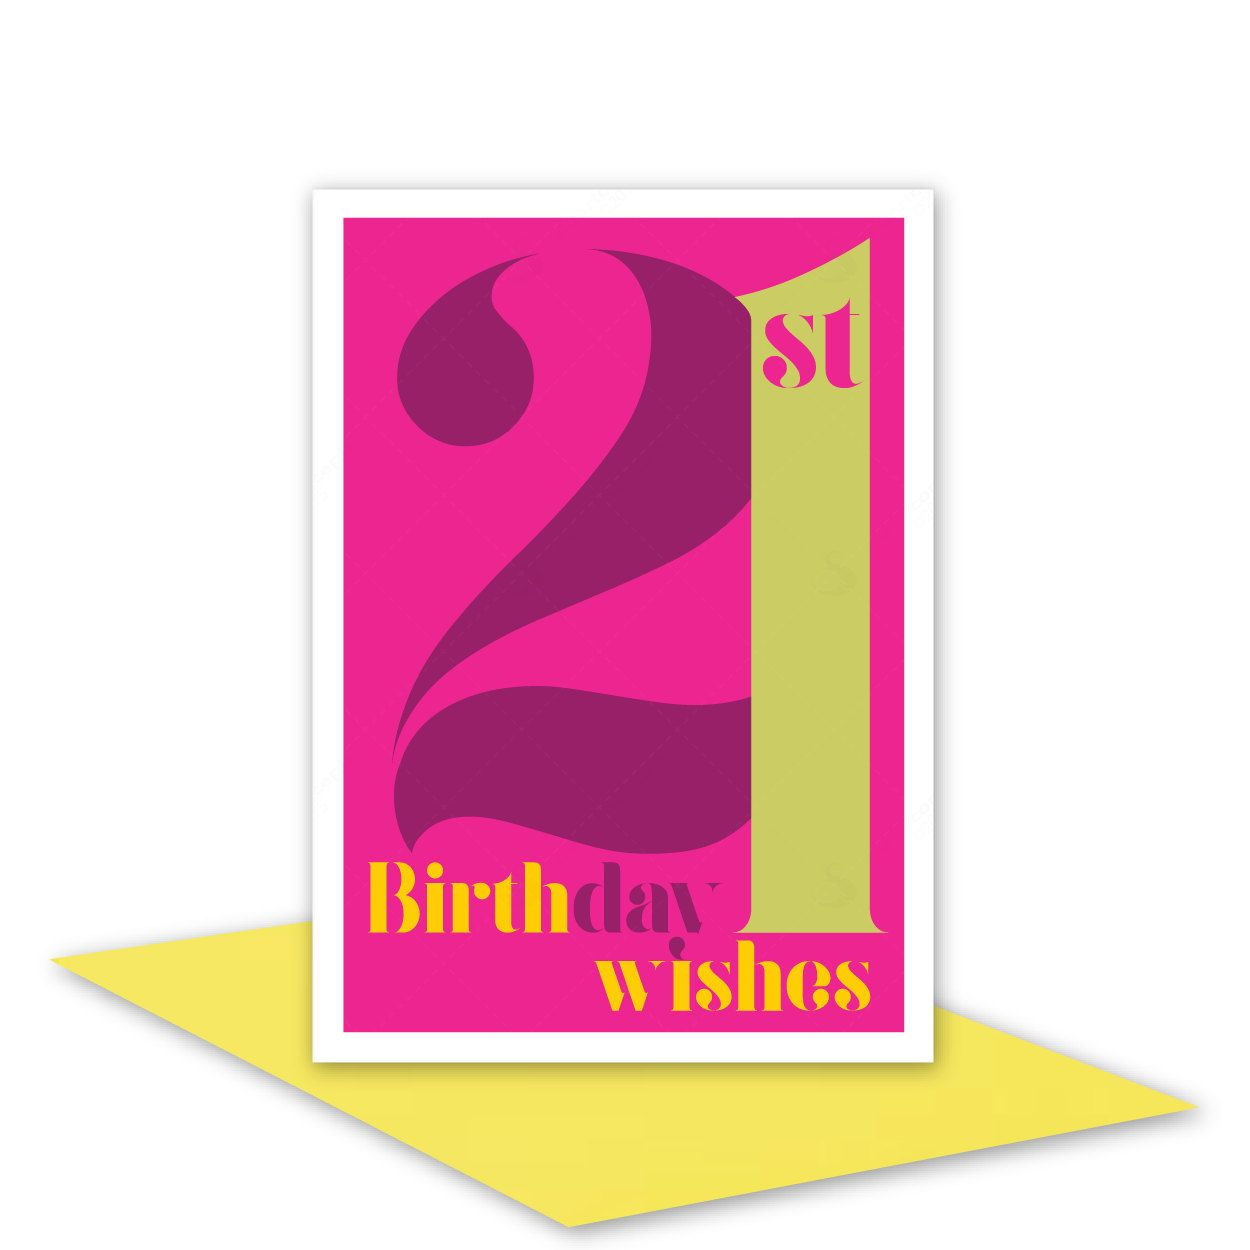 21st Birthday Wishes Card For Her 21 Happy Girl Woman Sister Daughter Niece Pink Typography Design Inside Message Options